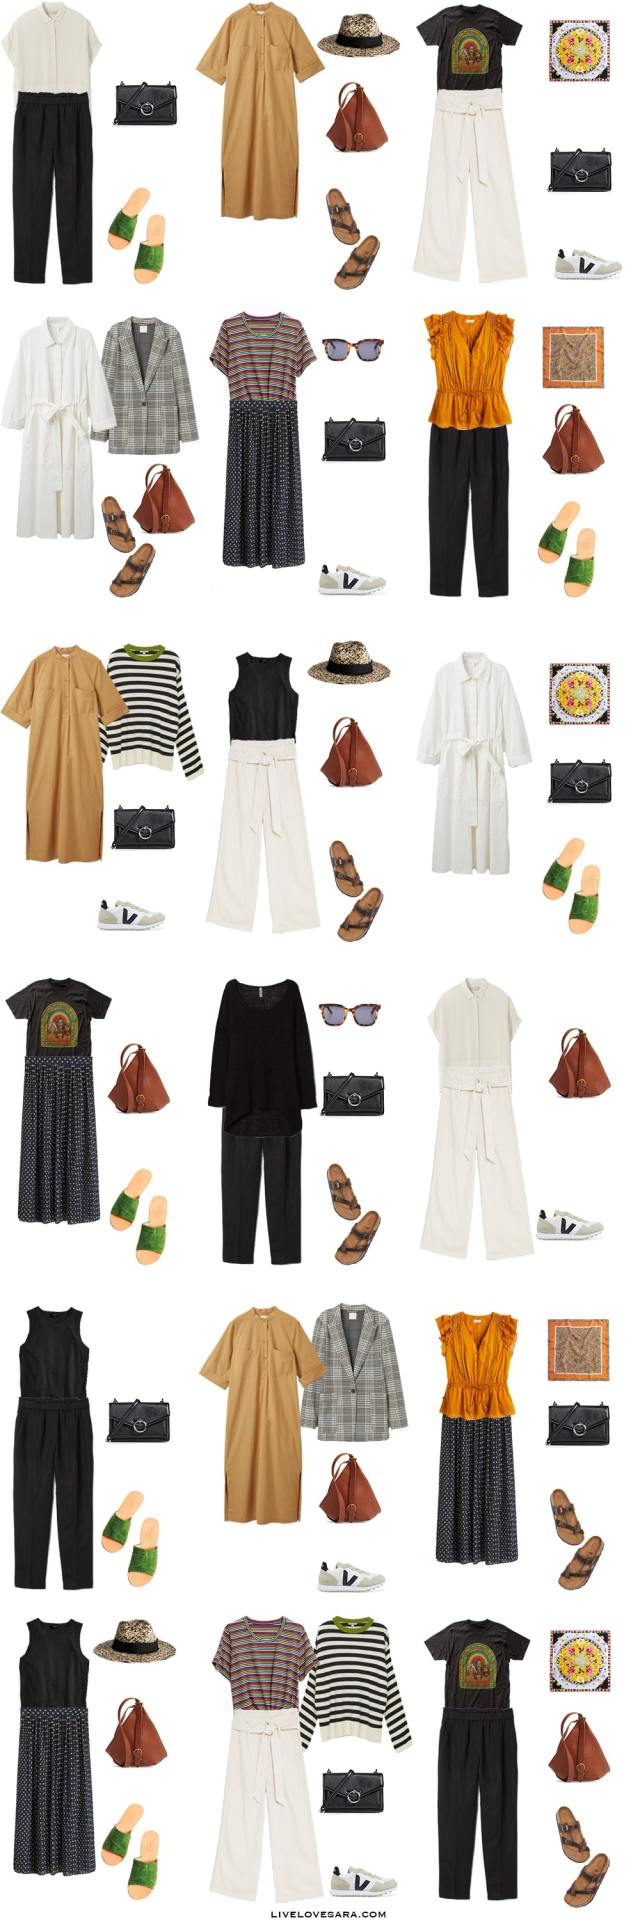 A What to Pack for Croatia Packing List and corresponding outfit options.